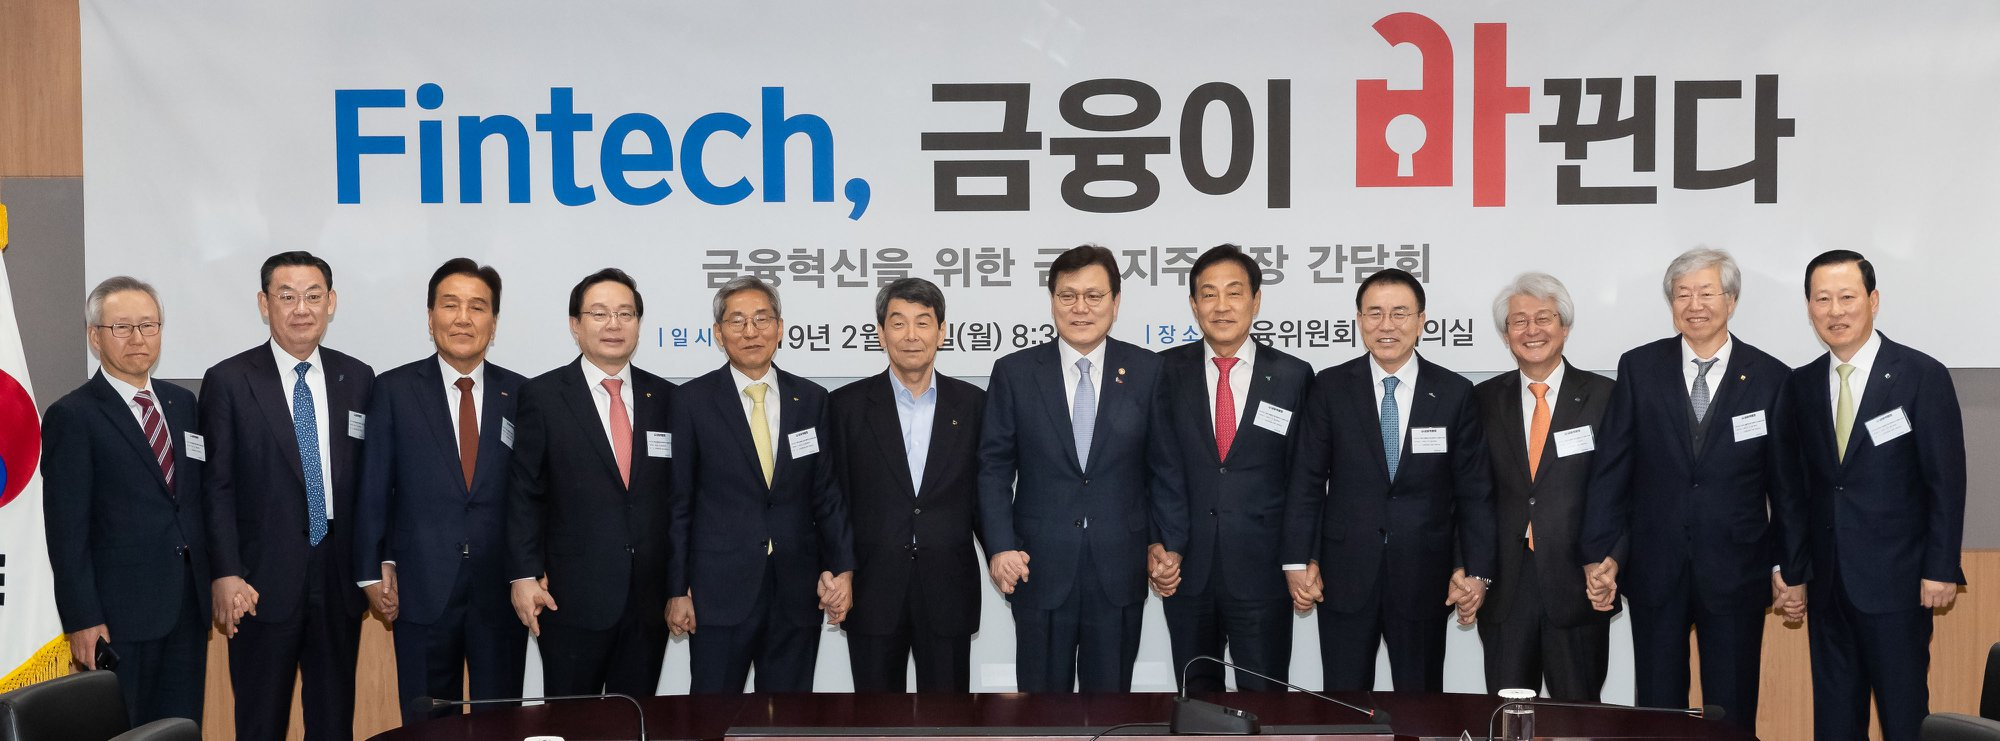 Fintech South Korea